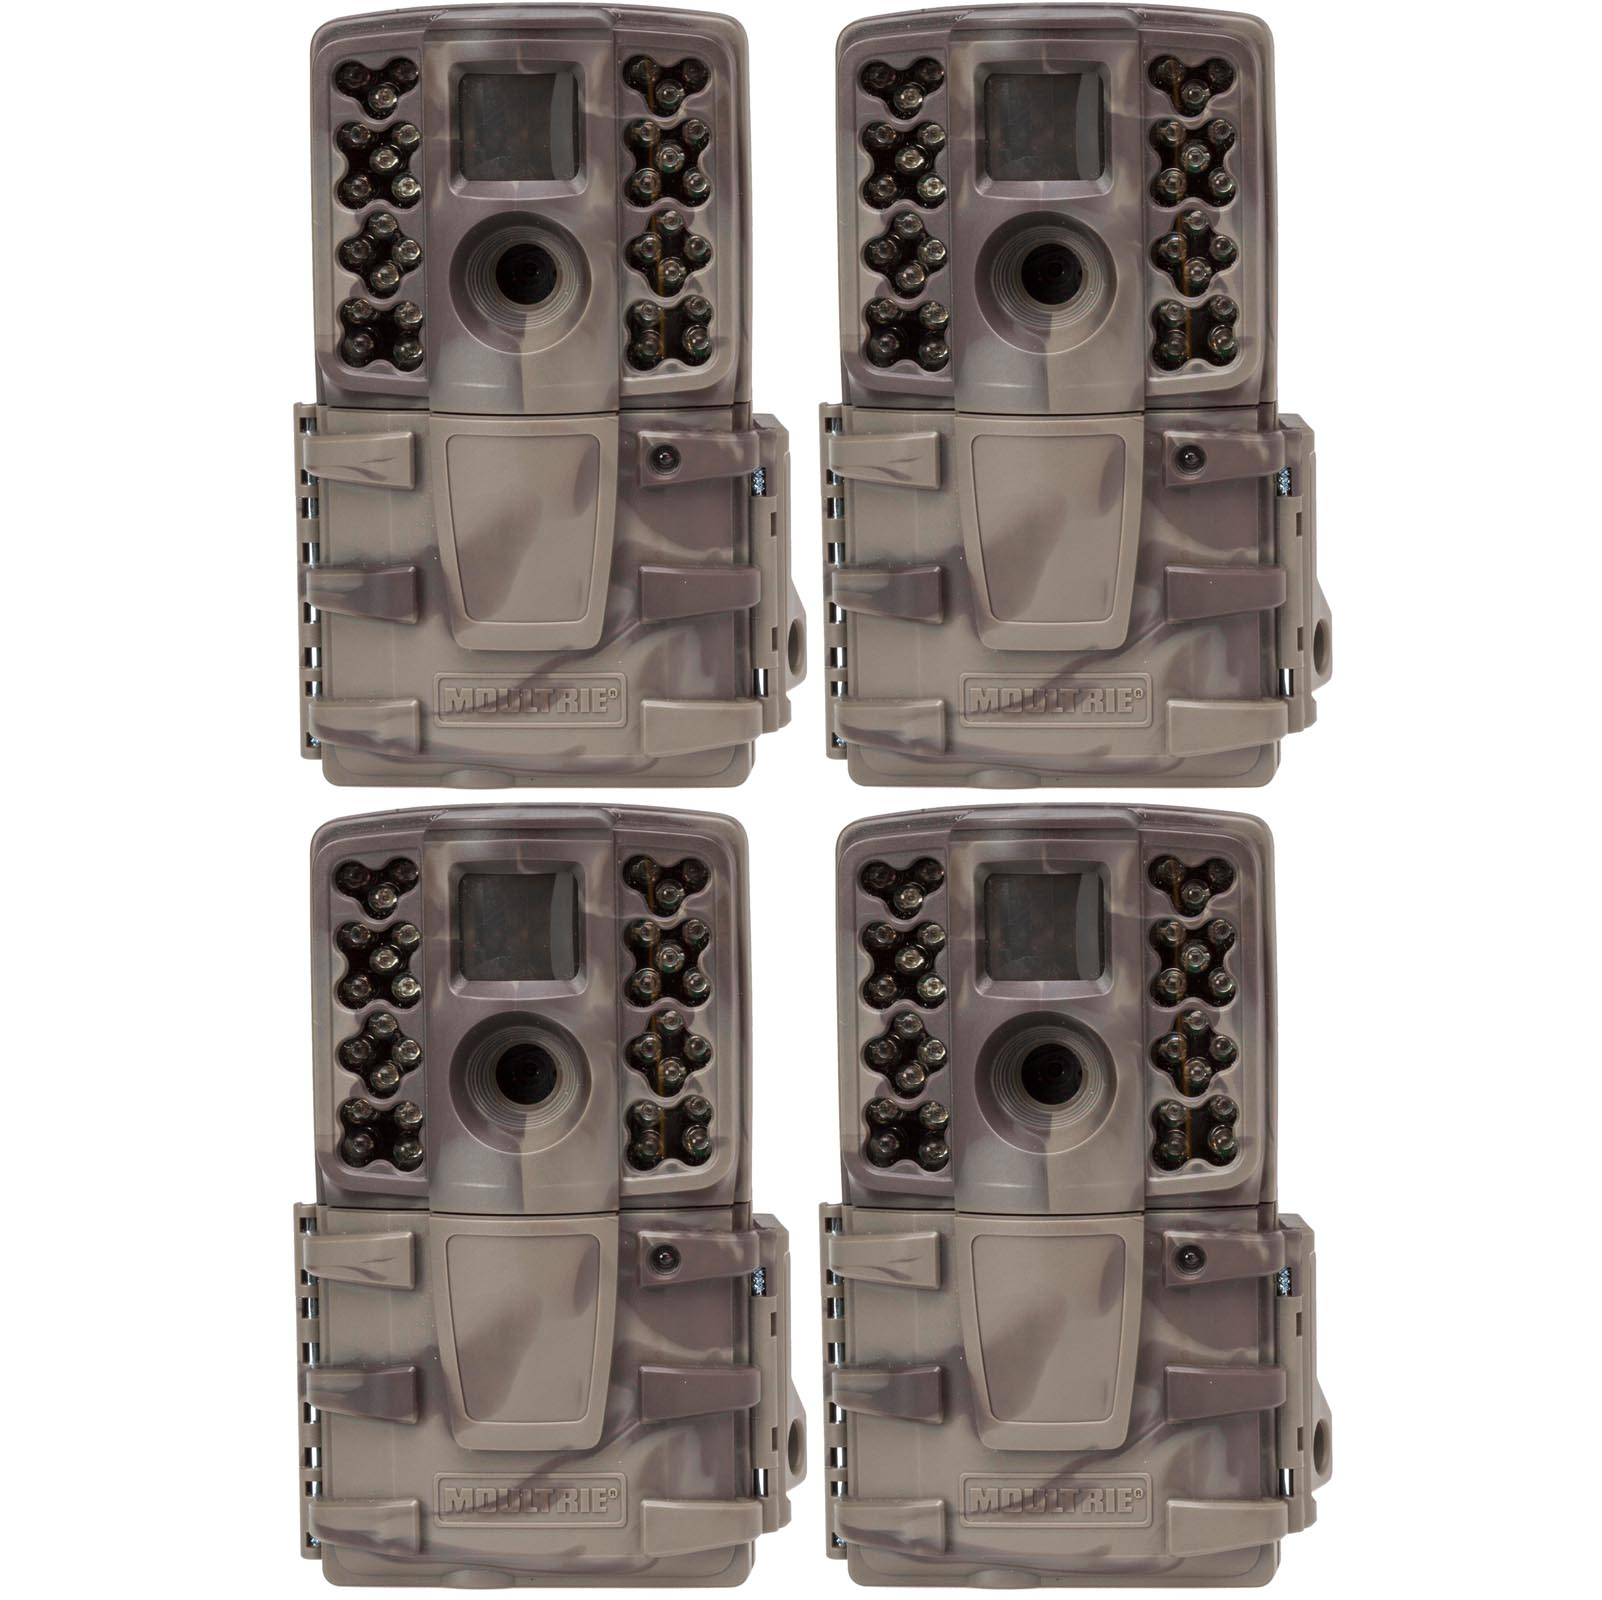 (4) Moultrie No Glow Invisible 12 MP Mini A20i Infrared Game Cameras | A-20i by Moultrie